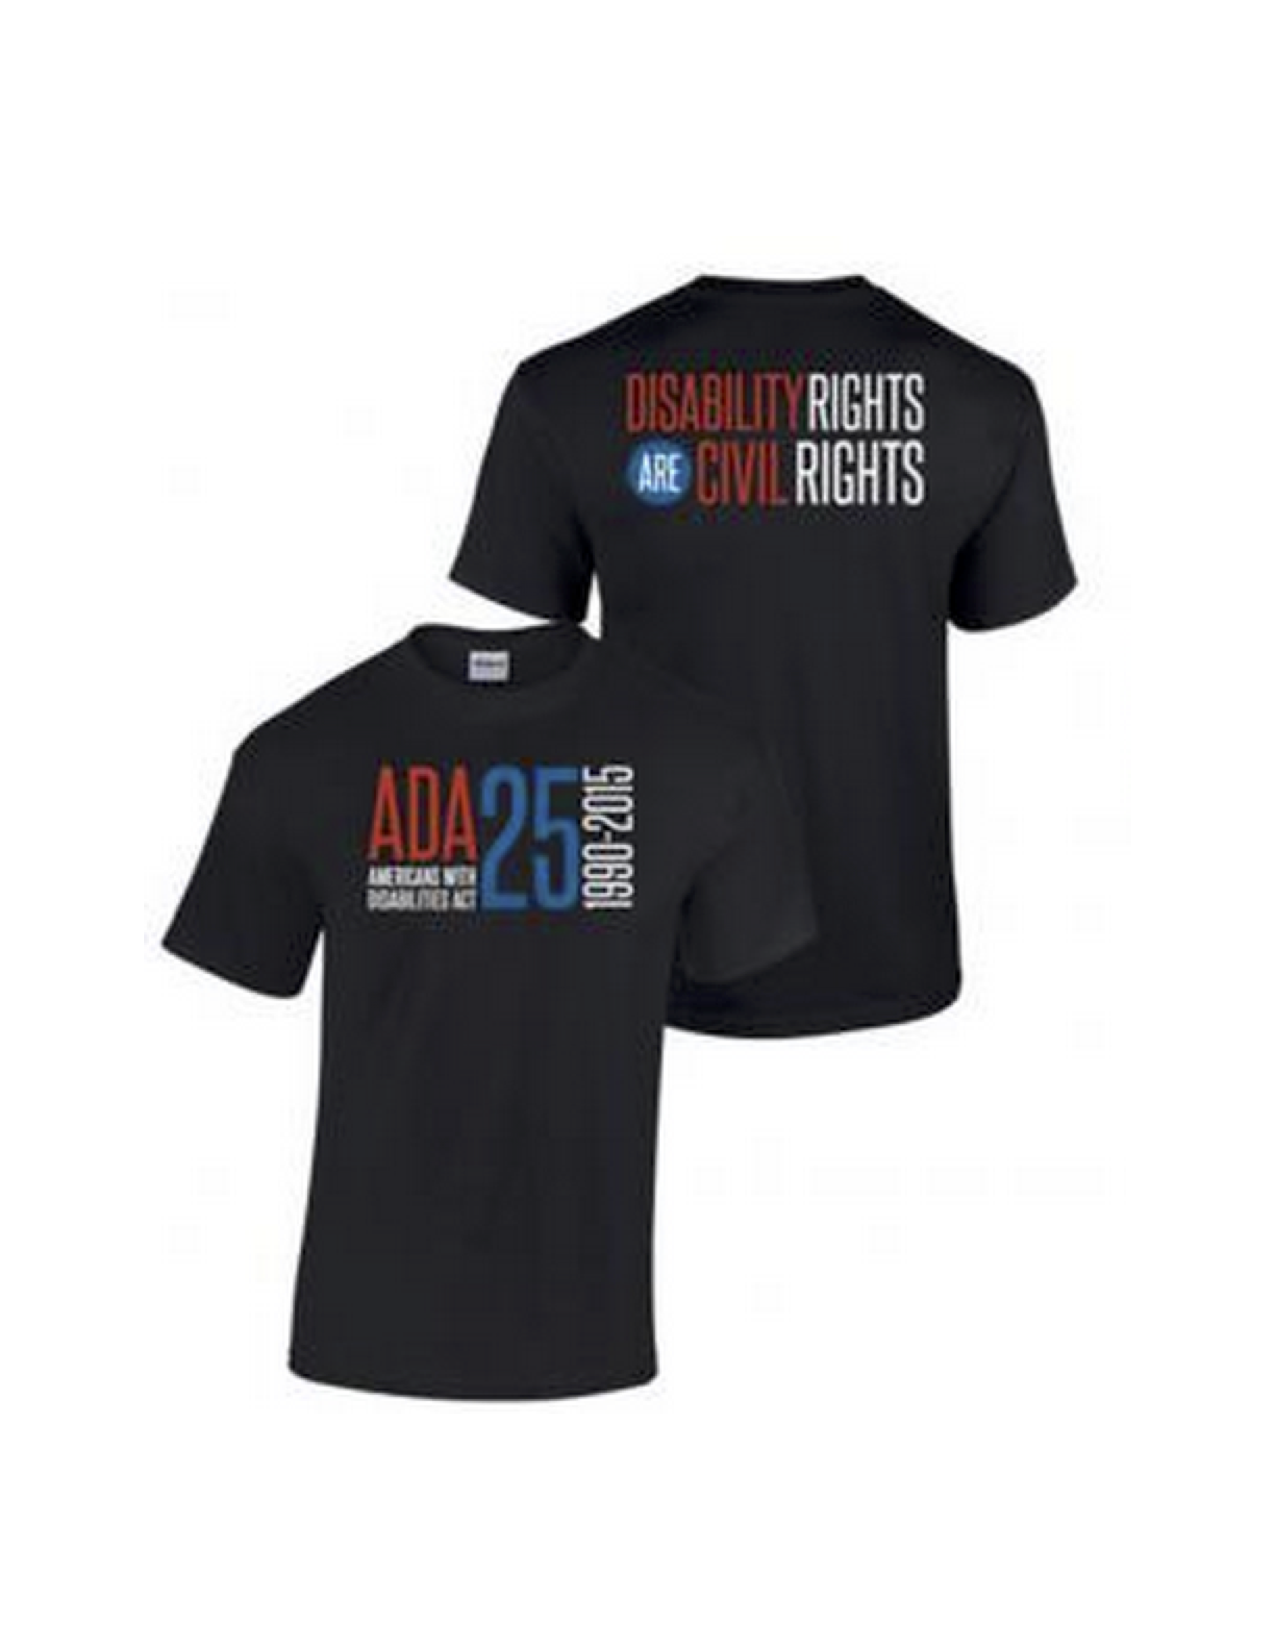 Black short sleeved tshirt. Front: ADA 25, Americans with Disability Act 1990-2015. Back Disability Rights are Civil Rights. Ink colors are red, white and blue.